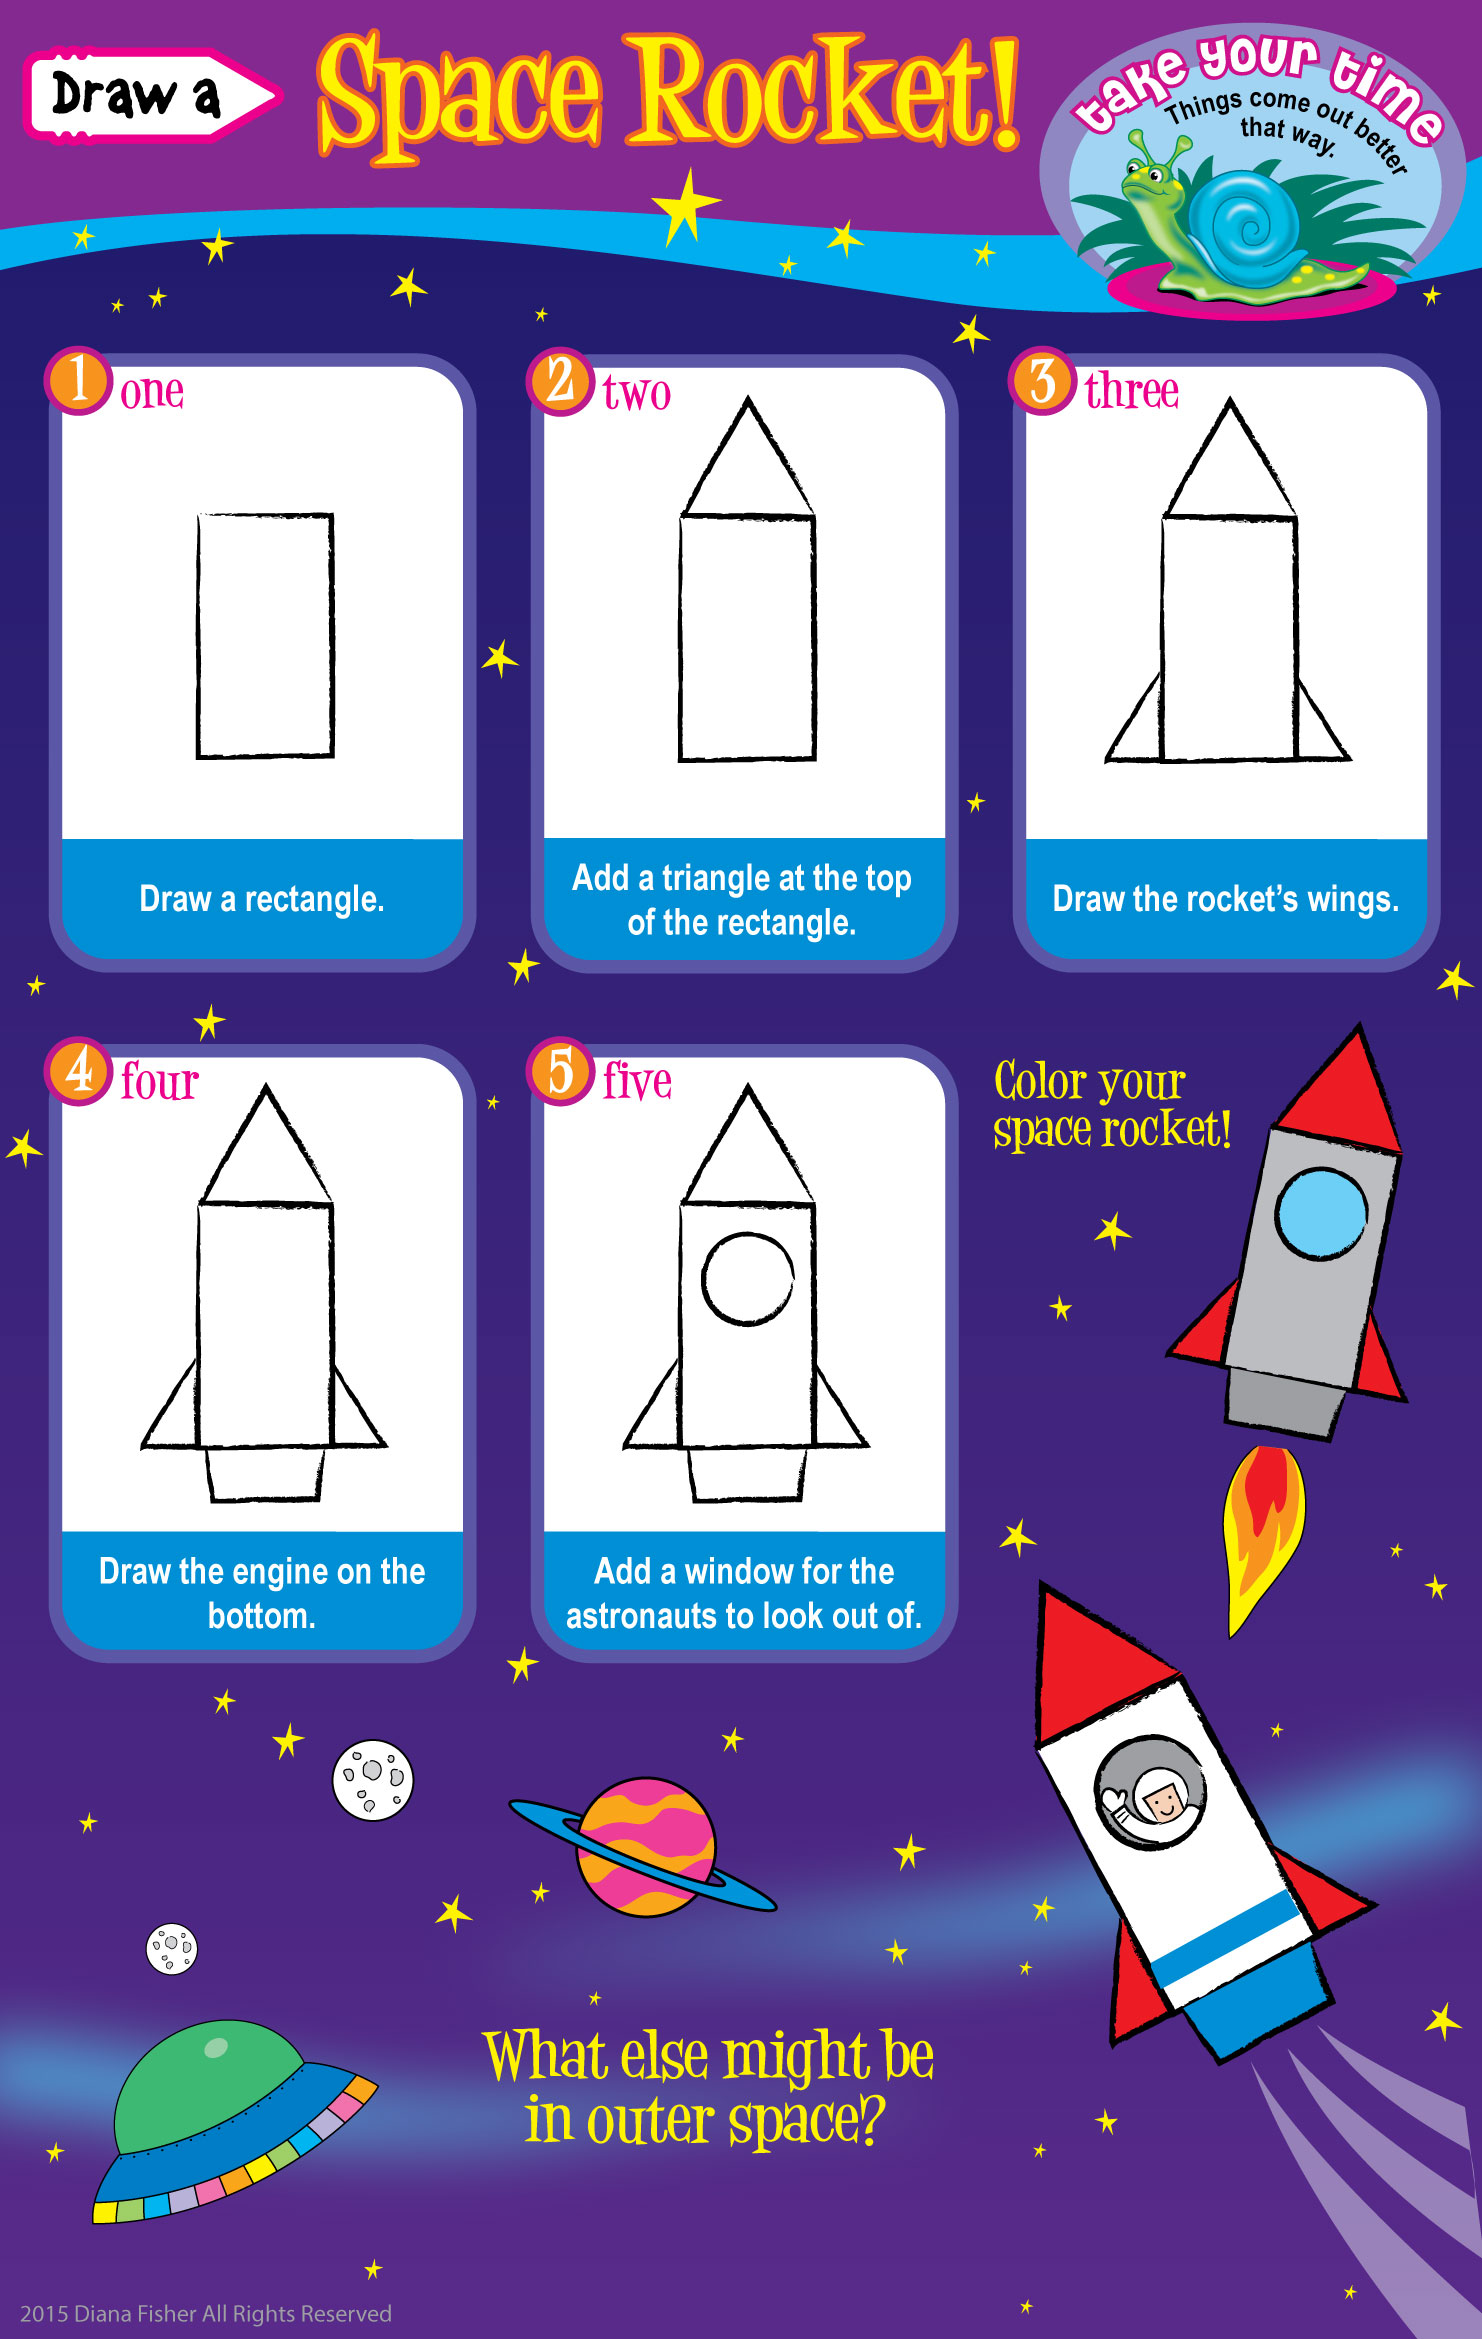 step instructions to draw a space rocket for children